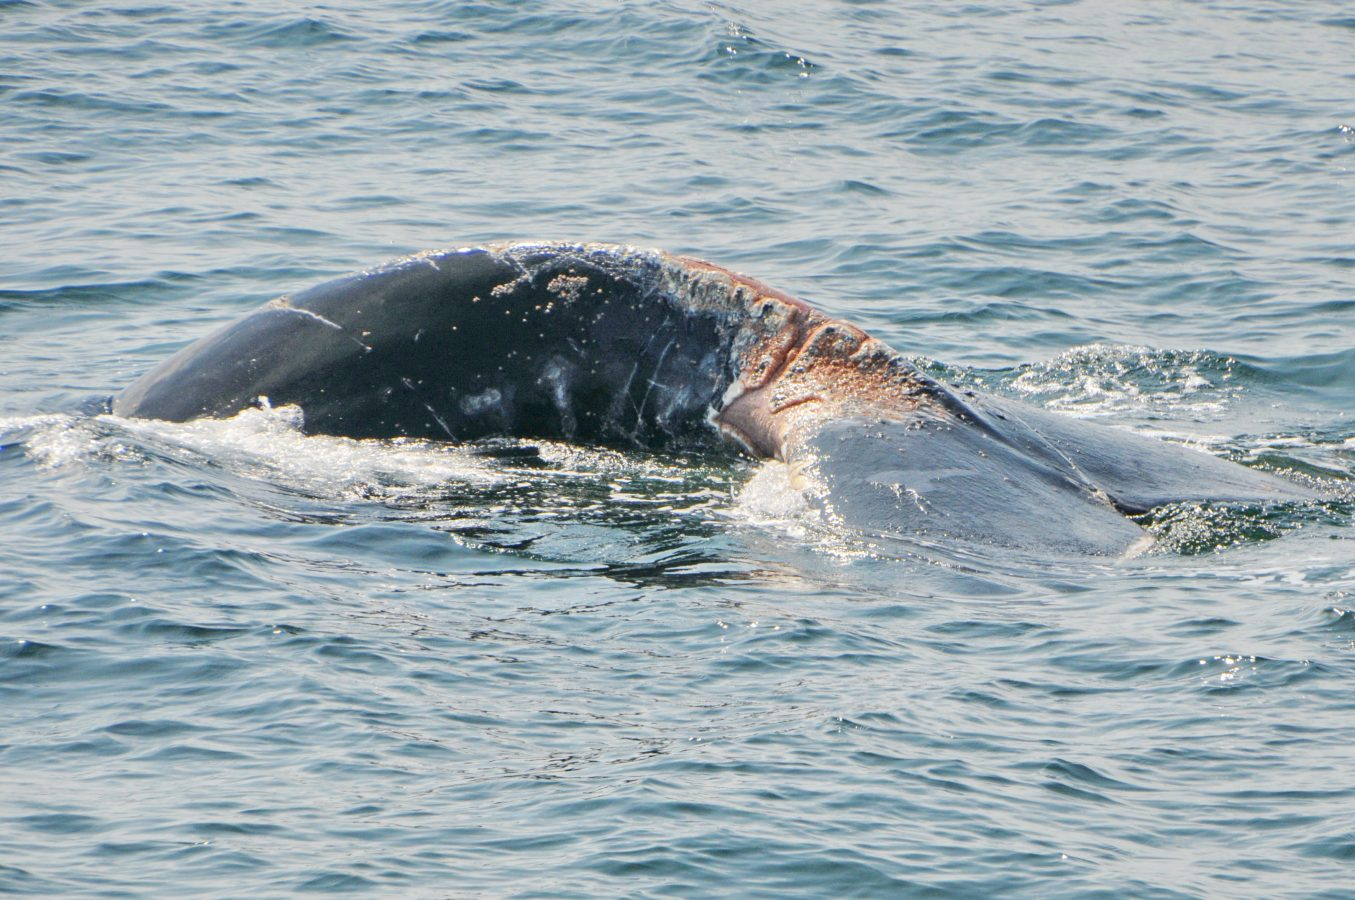 Open wounds on North Atlantic right whale #4440